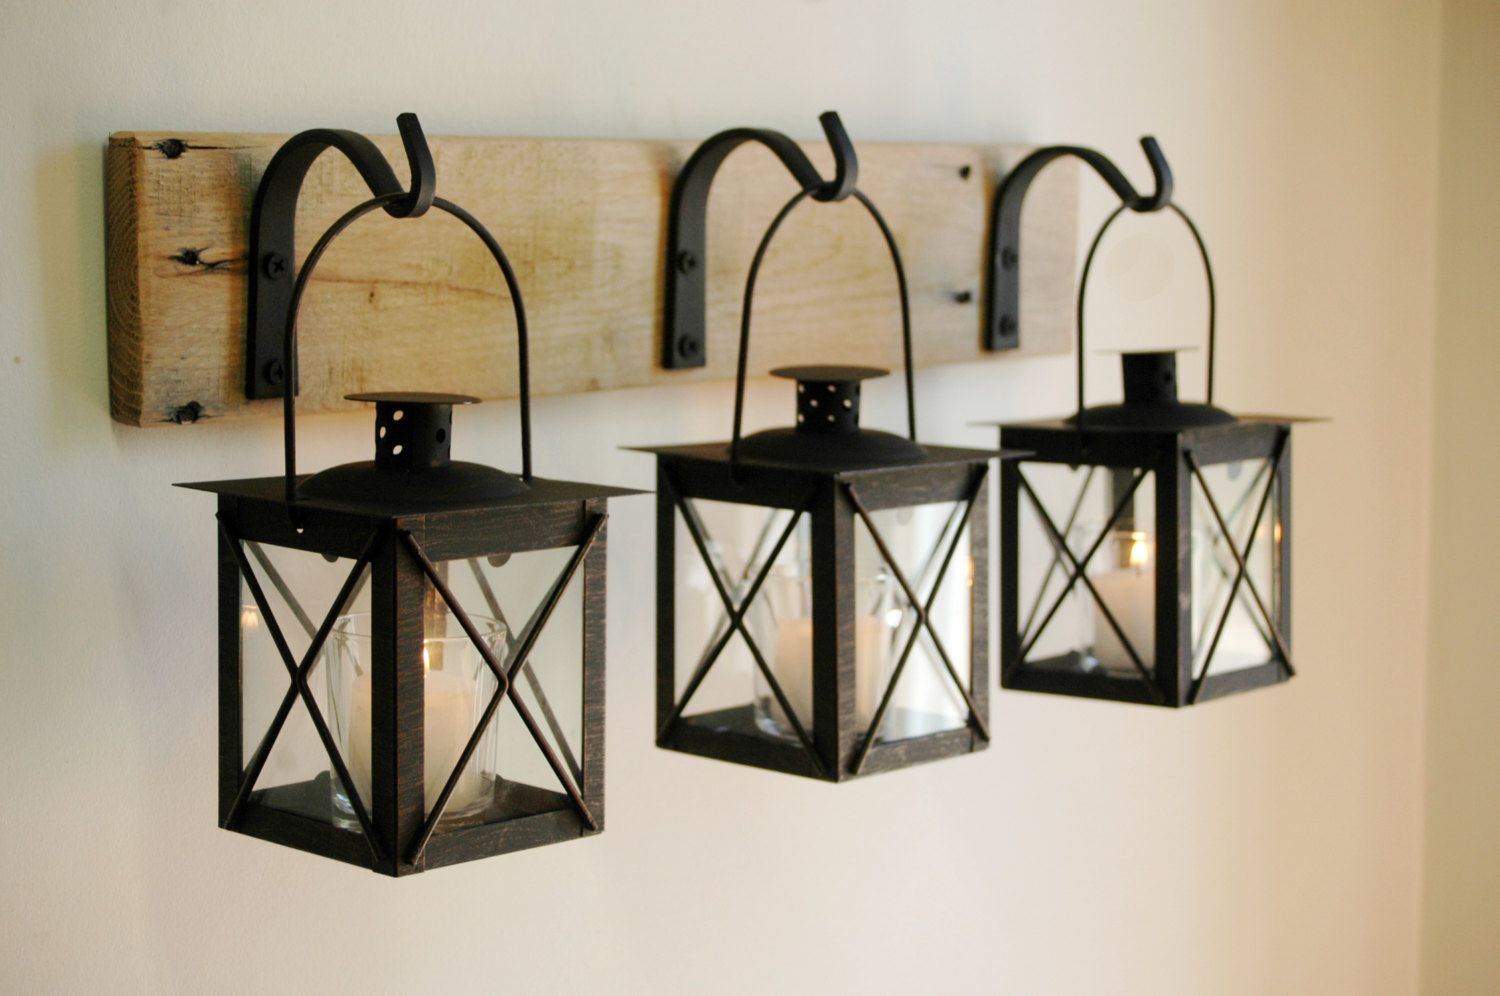 Luminara lantern indoor use ideas black lantern Cool wall signs